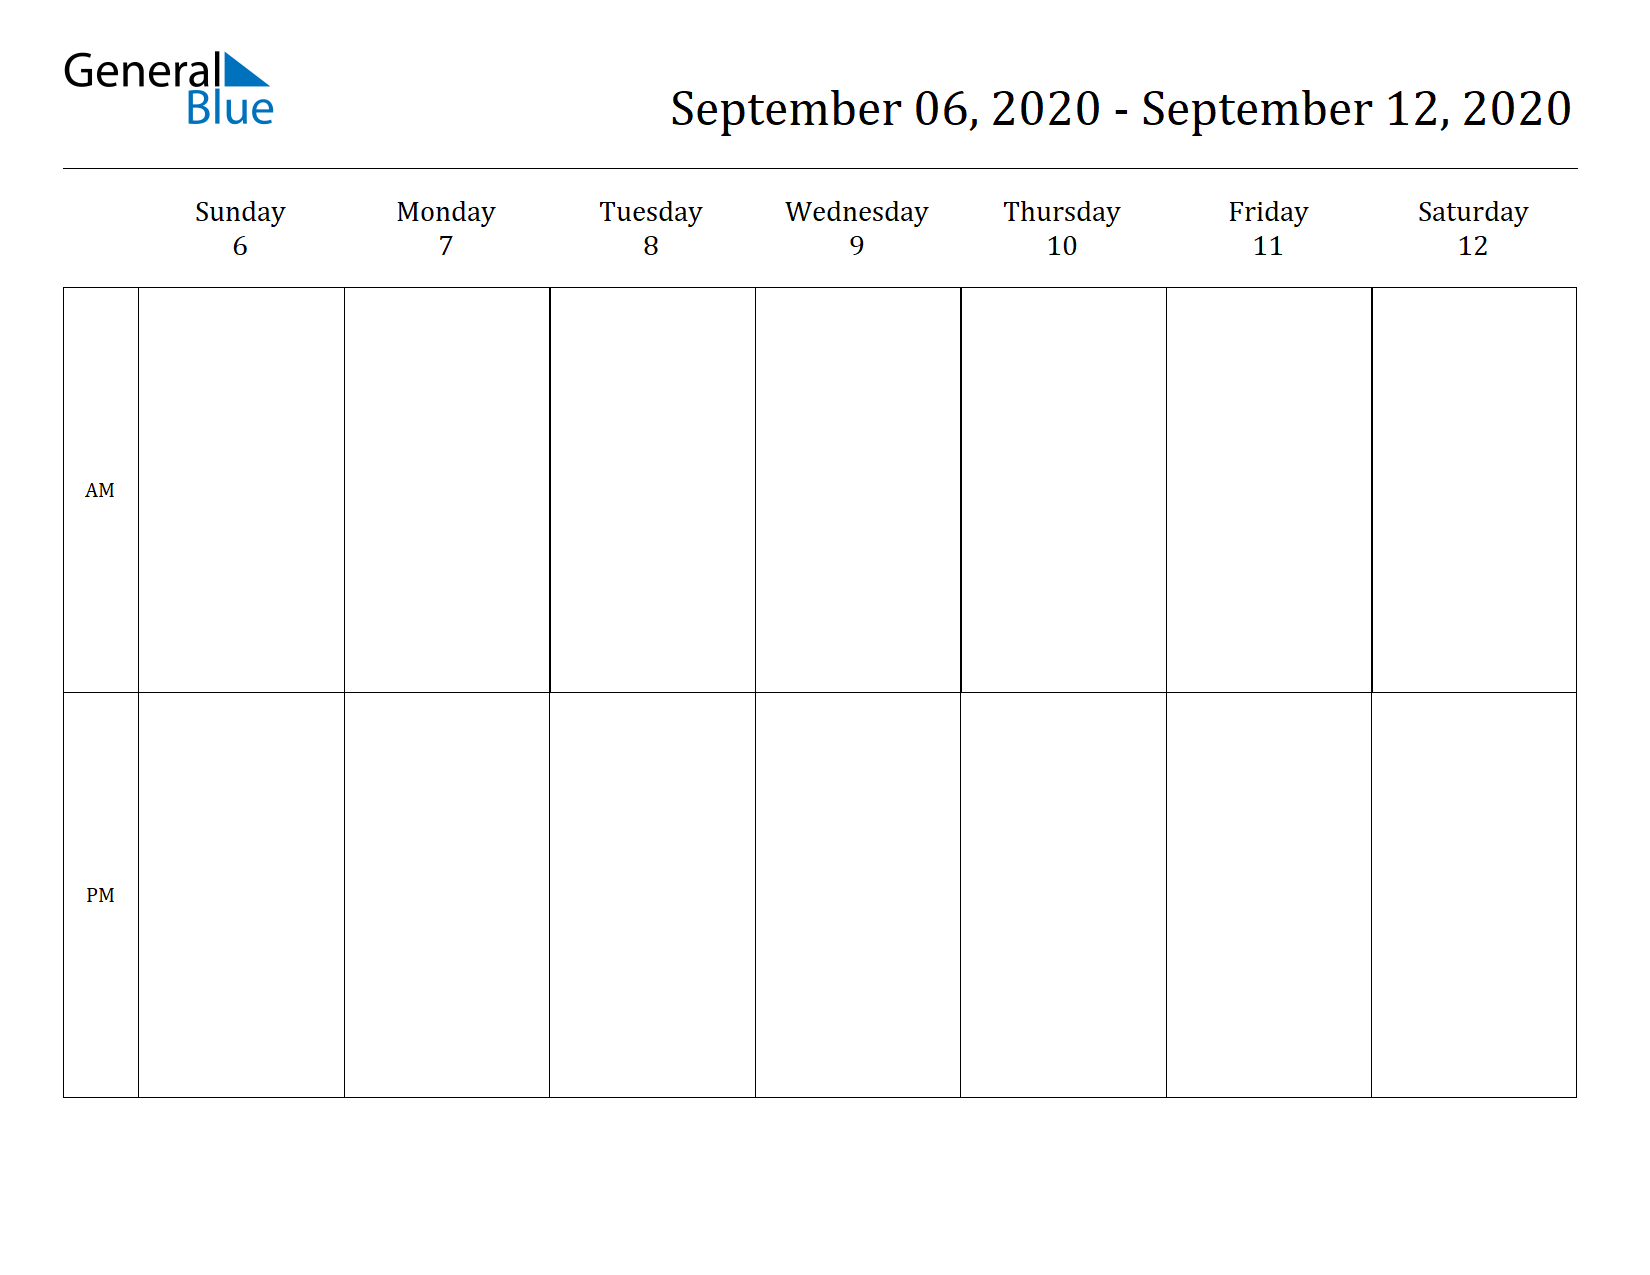 Weekly Calendar for Sep 06, 2020 to Sep 12, 2020